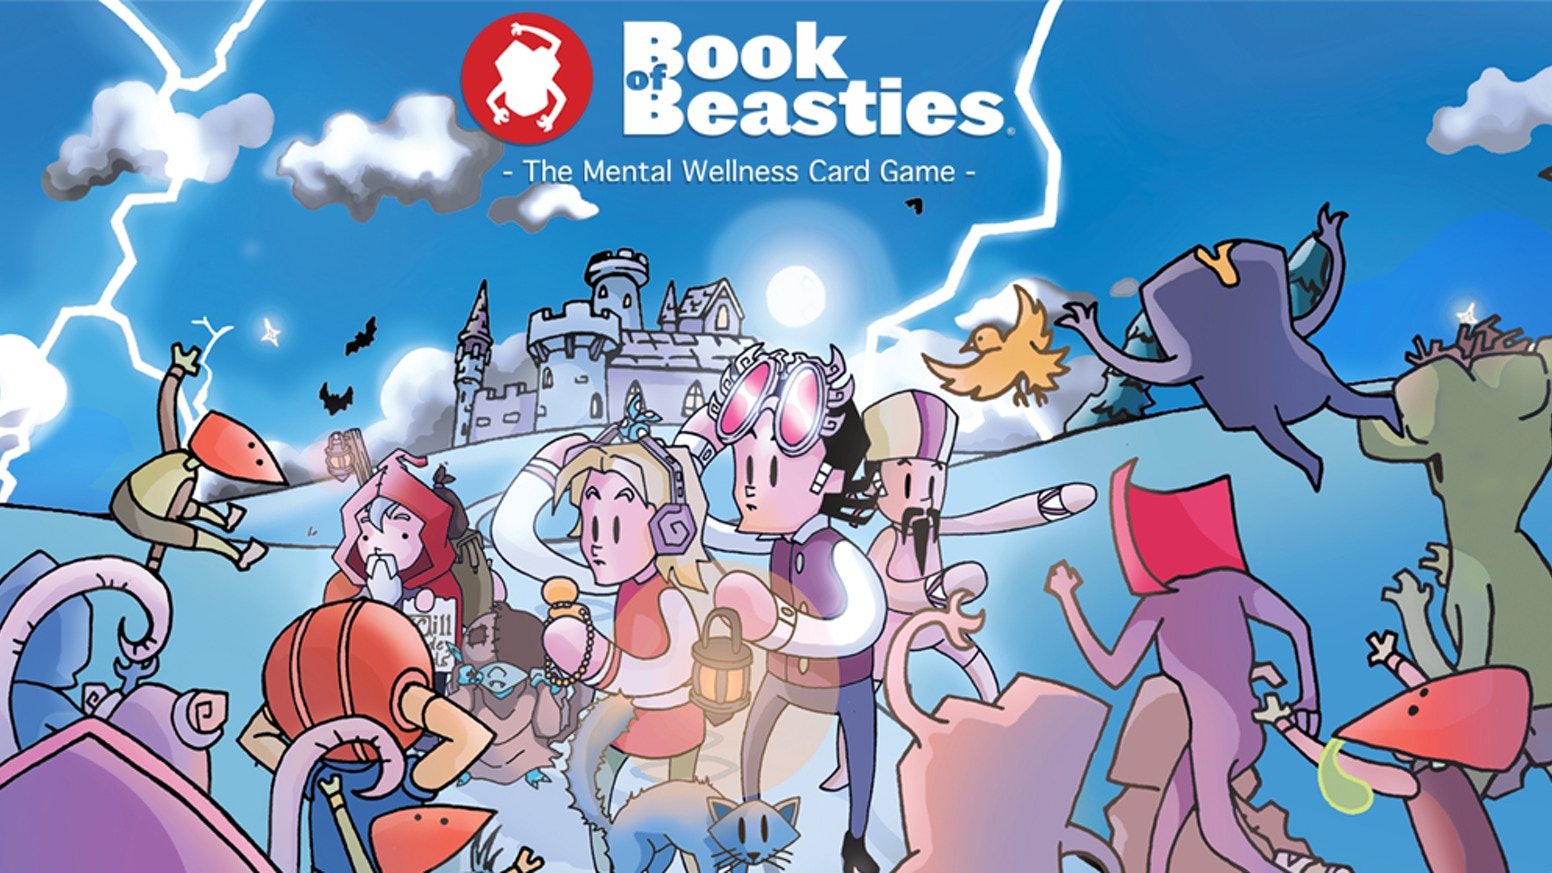 Book of Beasties is a fun and easy to learn card game for children and young people that inspires the discussion about mental wellness.